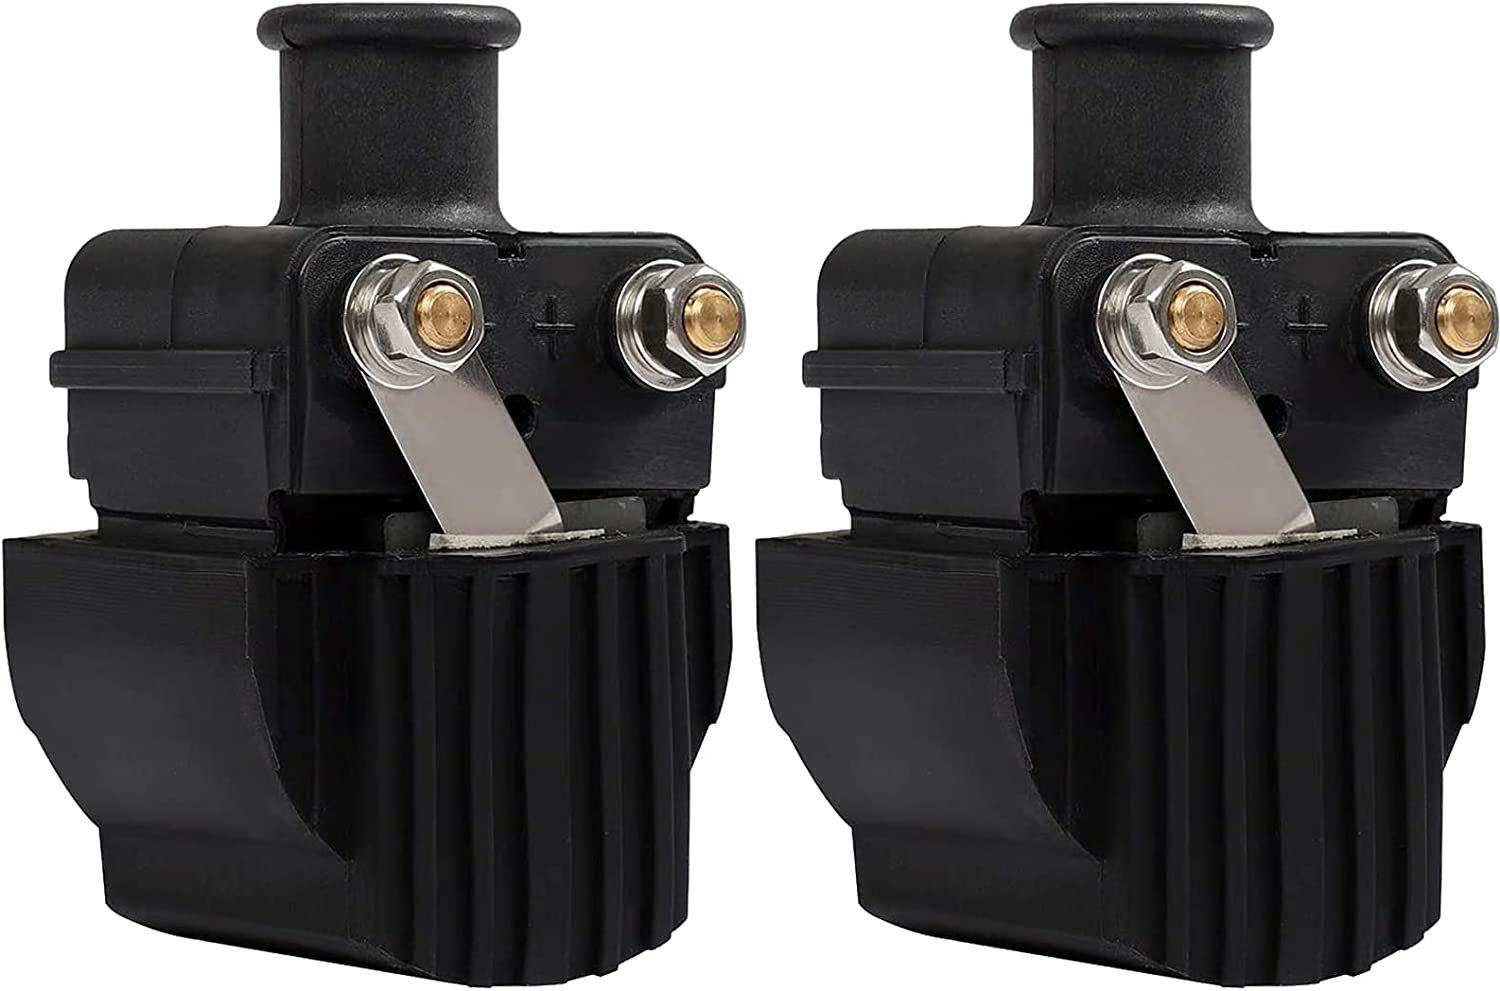 2 Pack Mercury Ignition Coil Sierra 18-5186 Ignition Coil Mercury Mariner for 6-125HP Outboard Boat Replaces 339-7370A13 339-832757A4 Mercury Outboard Ignition Coil